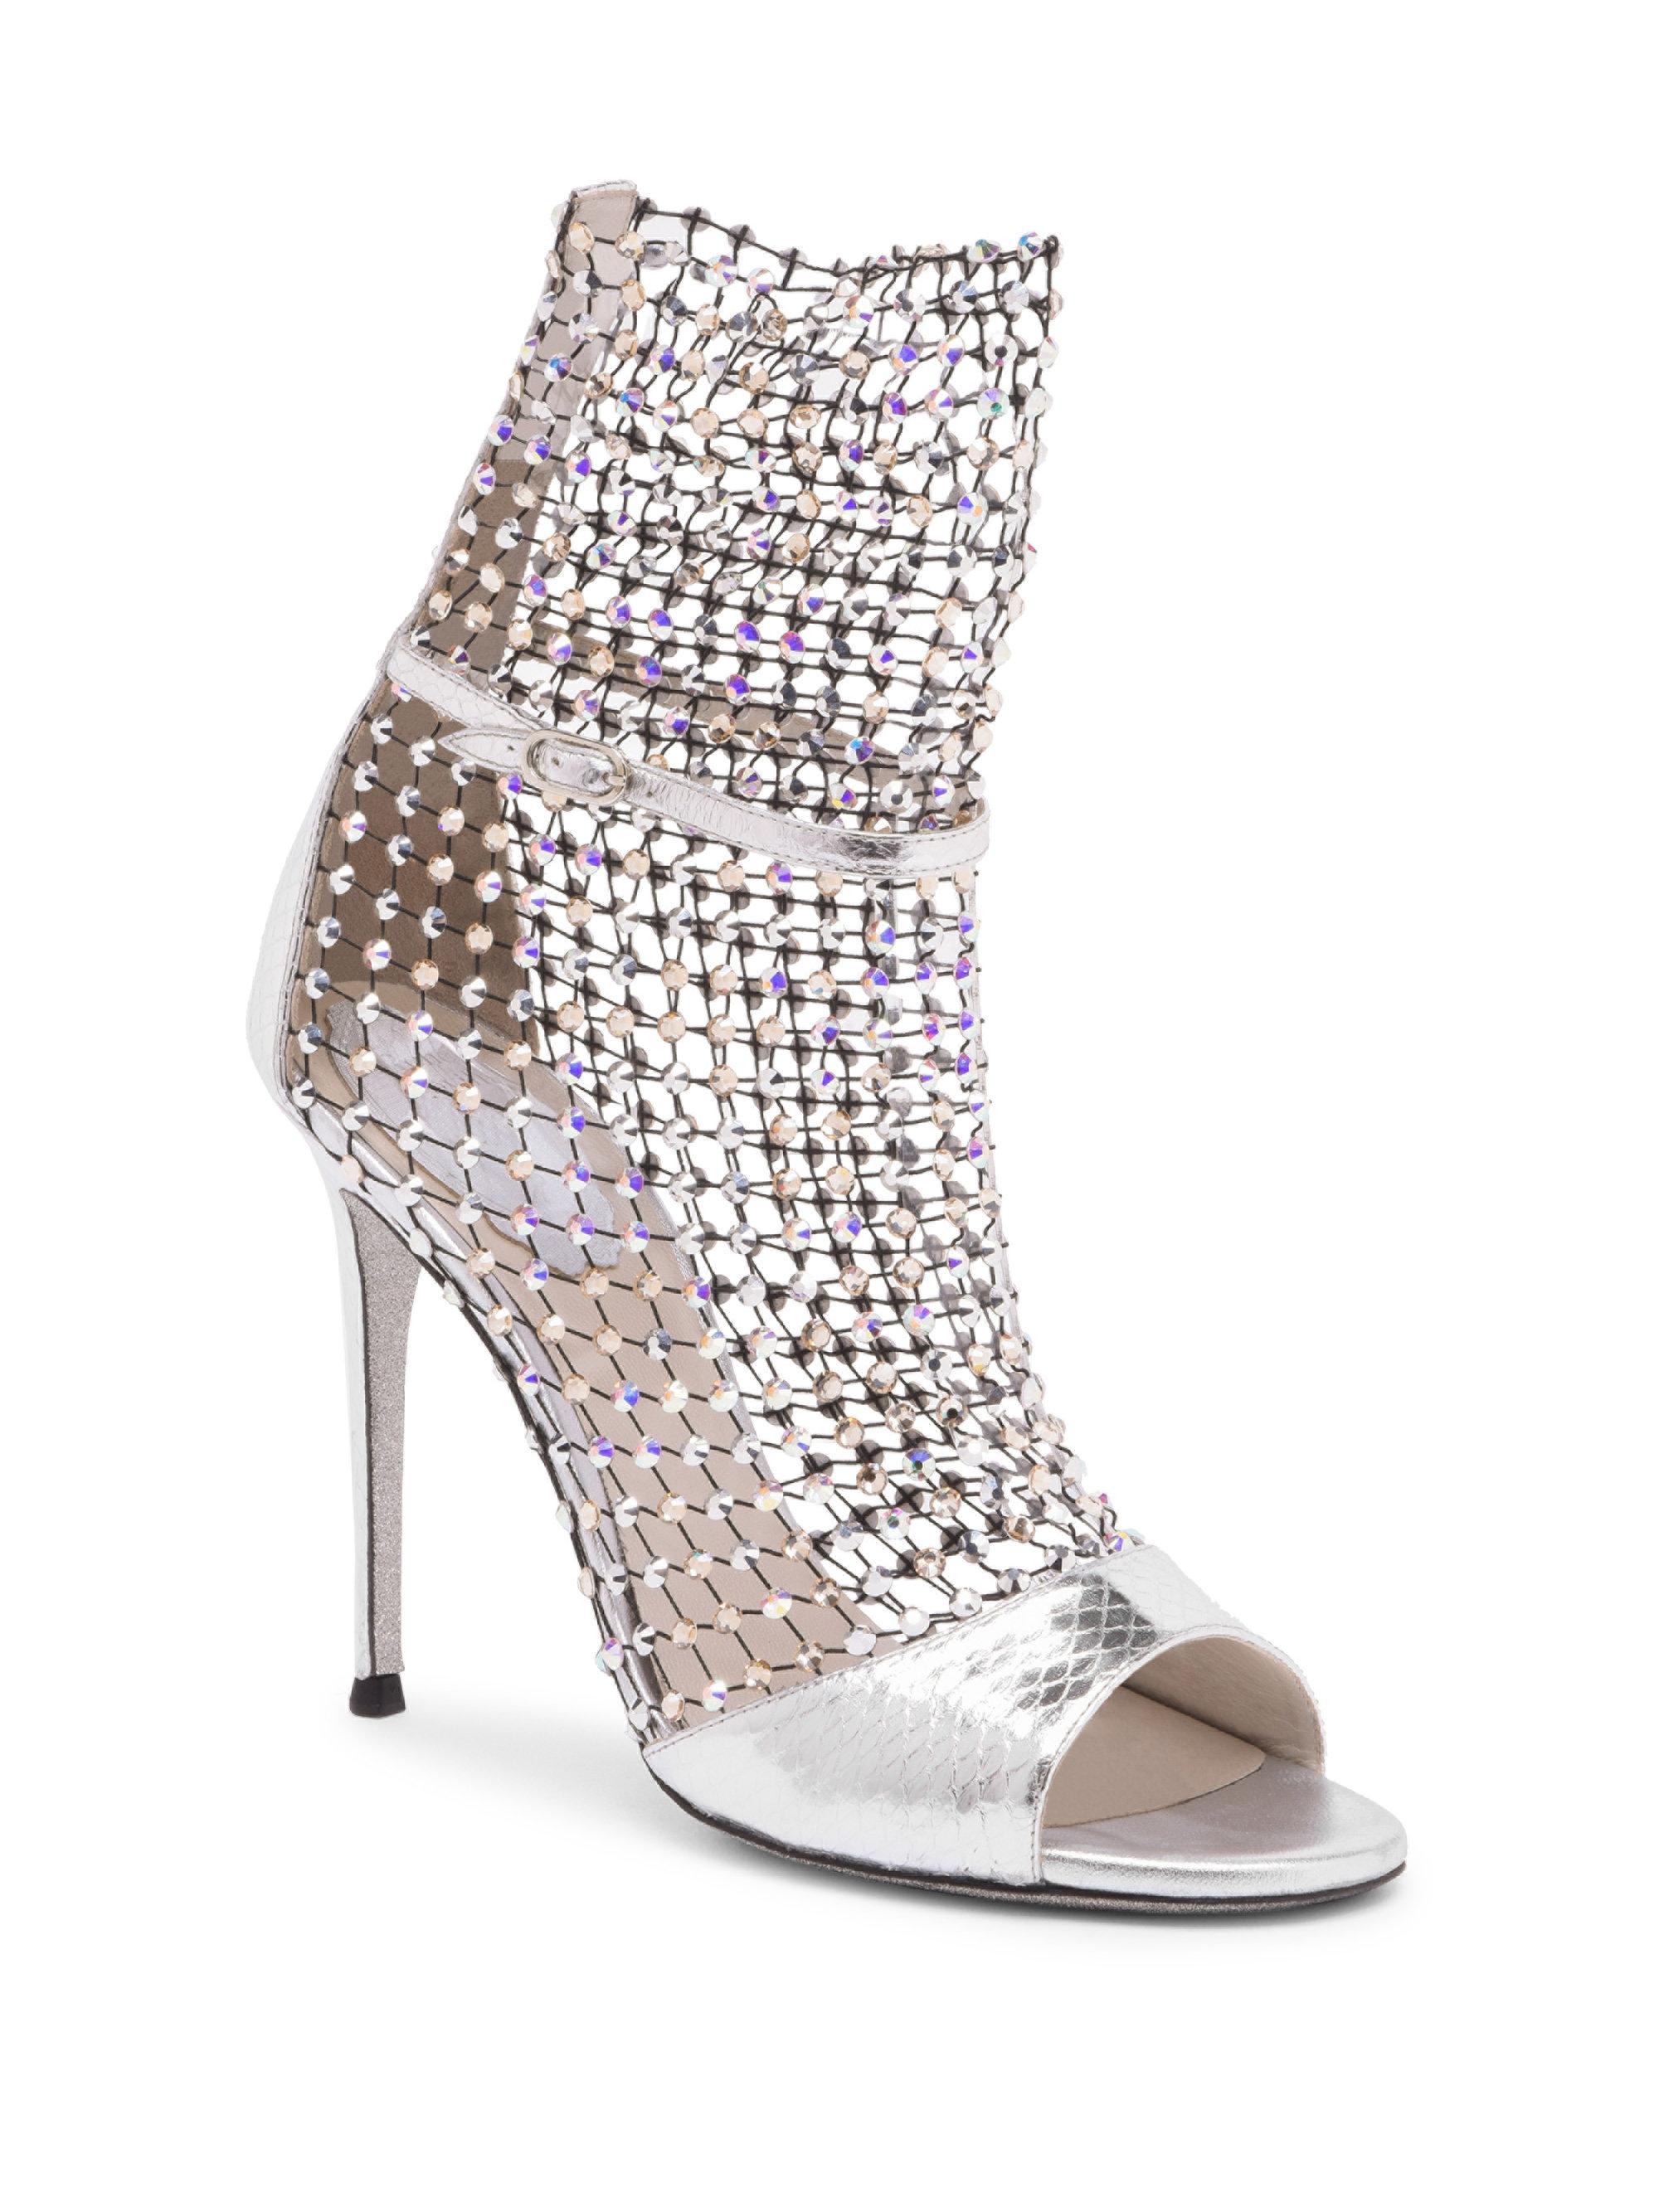 RENé CAOVILLA Crystal Mesh Ayers Snake Leather Open-Toe Ankle Boots lHFf3H2FN